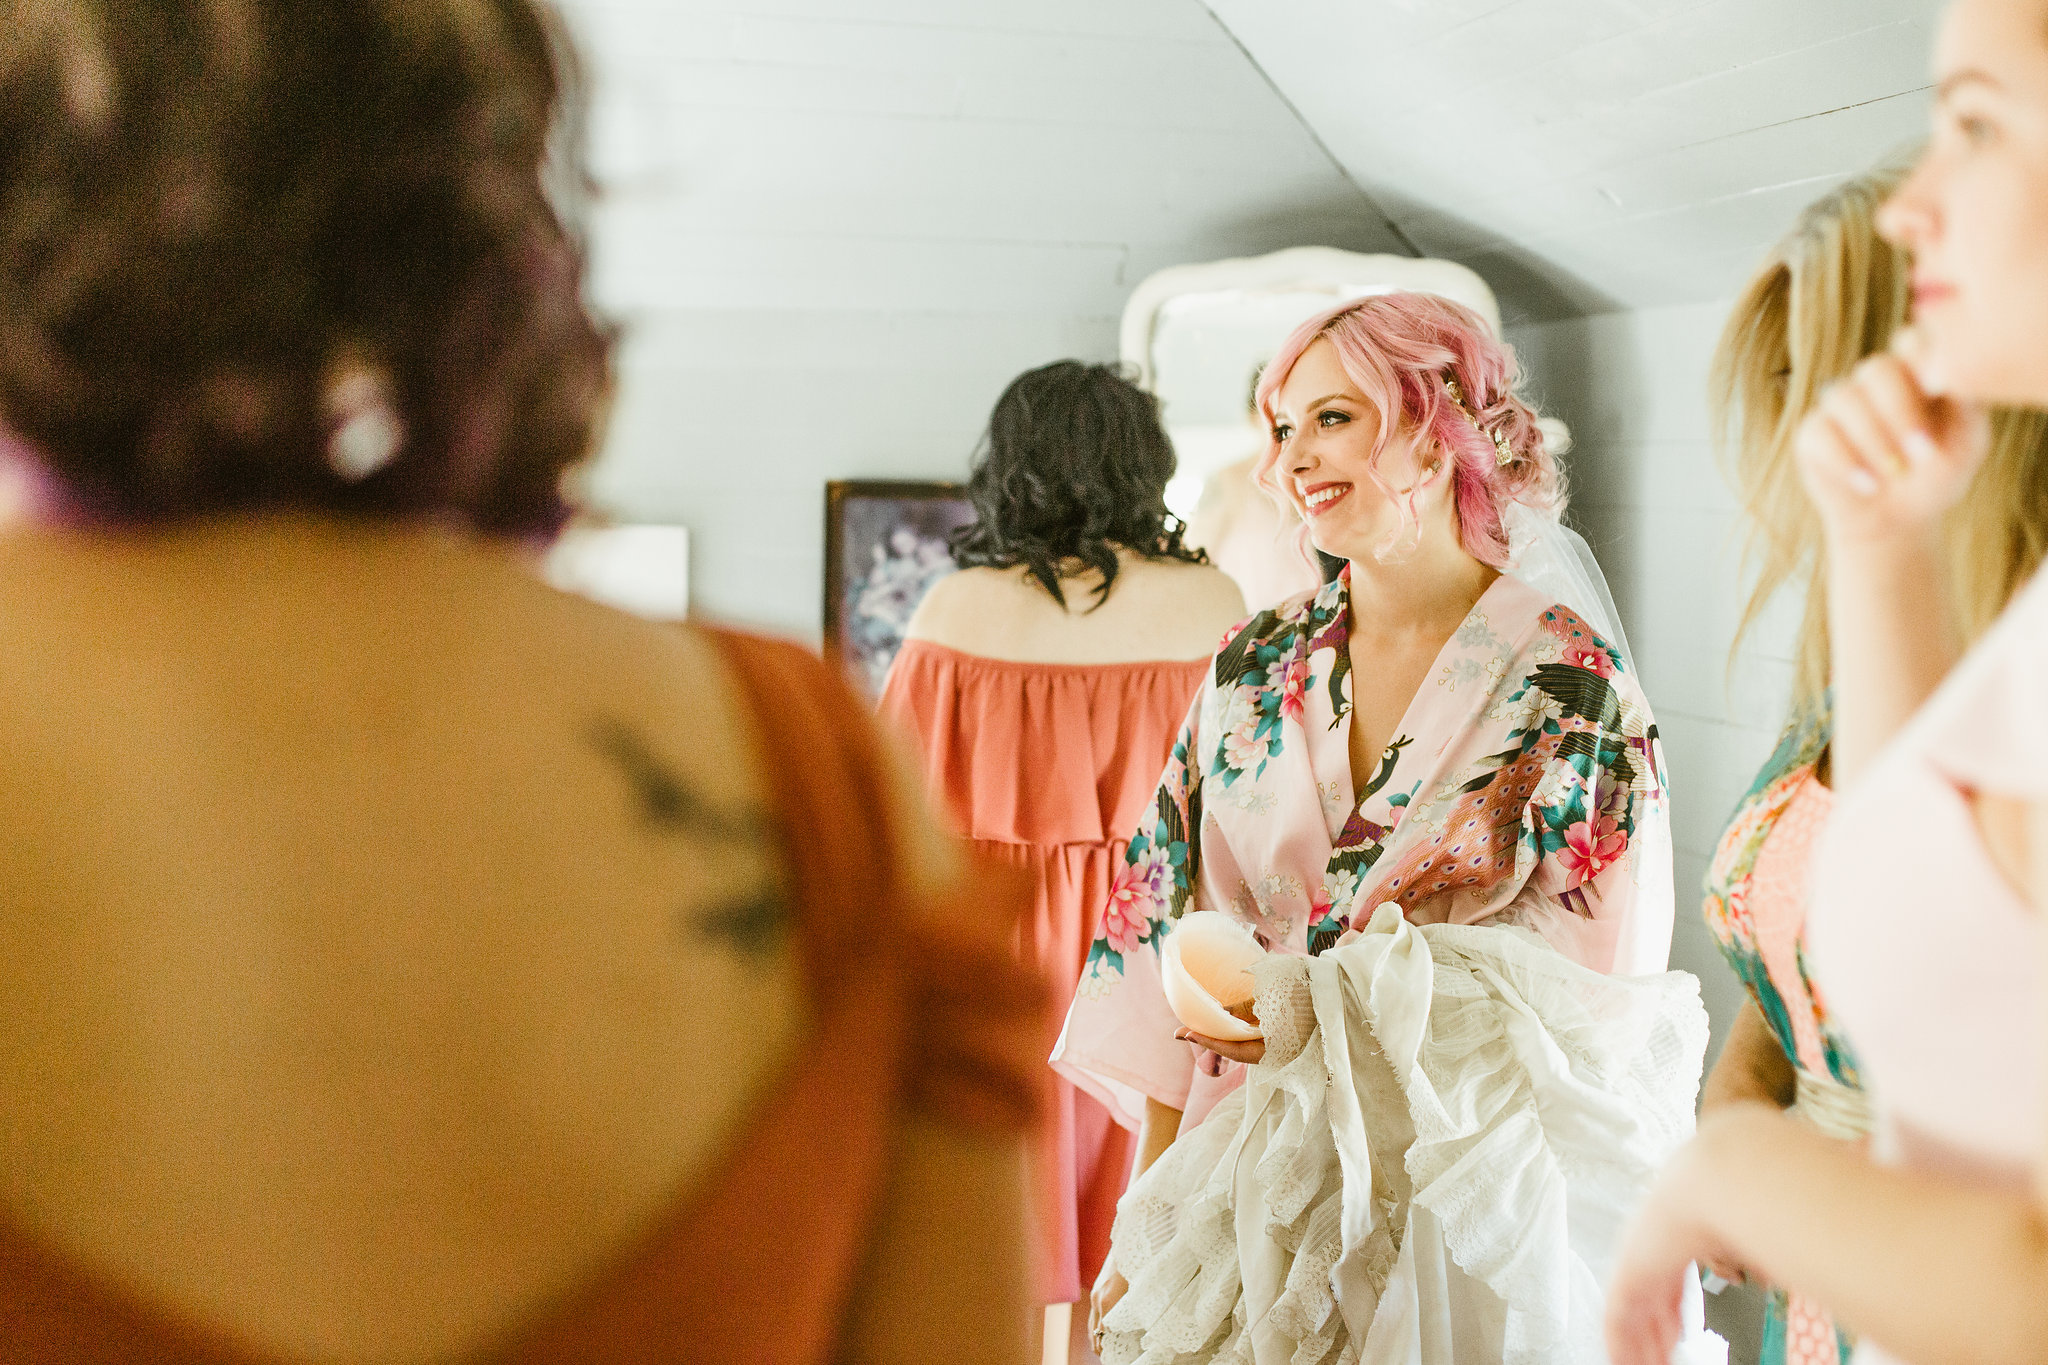 Bride with pink hair and floral robe